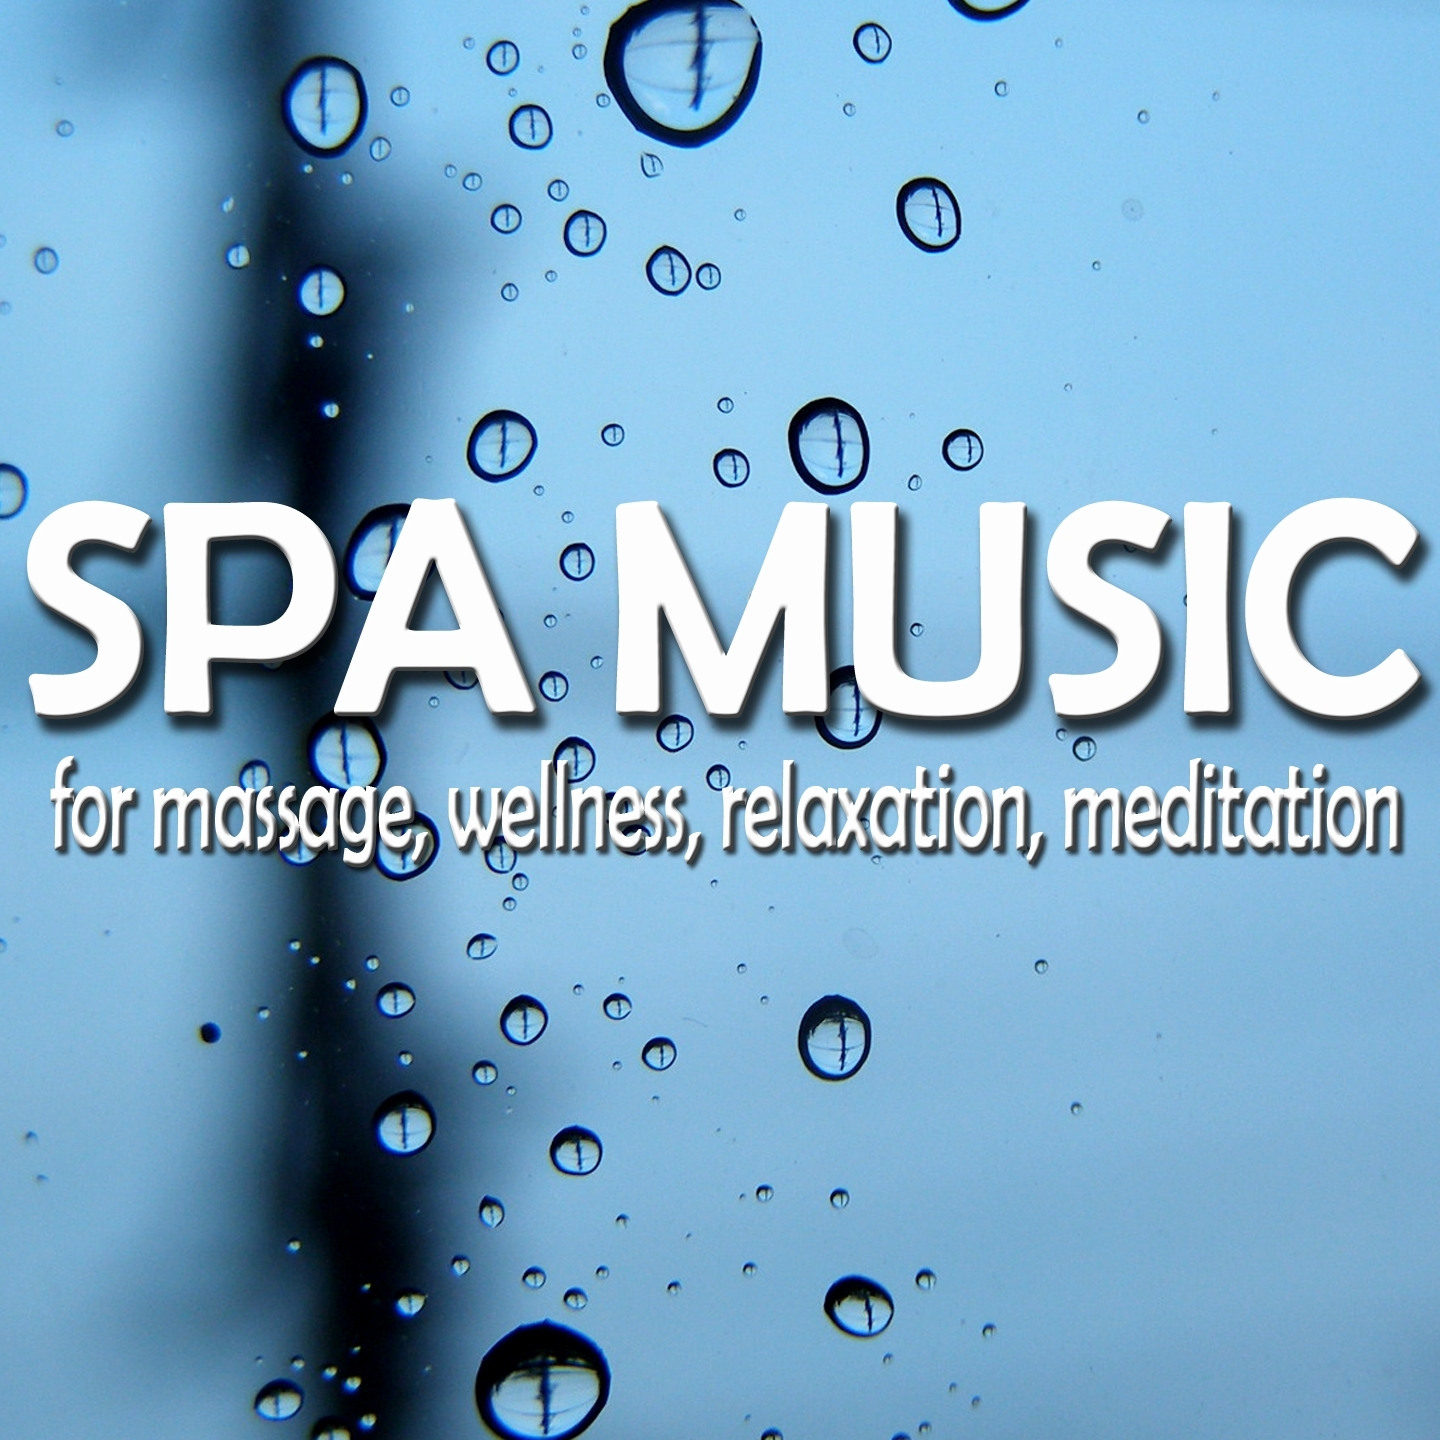 SPA Music for massage, wellness, relaxation, meditation